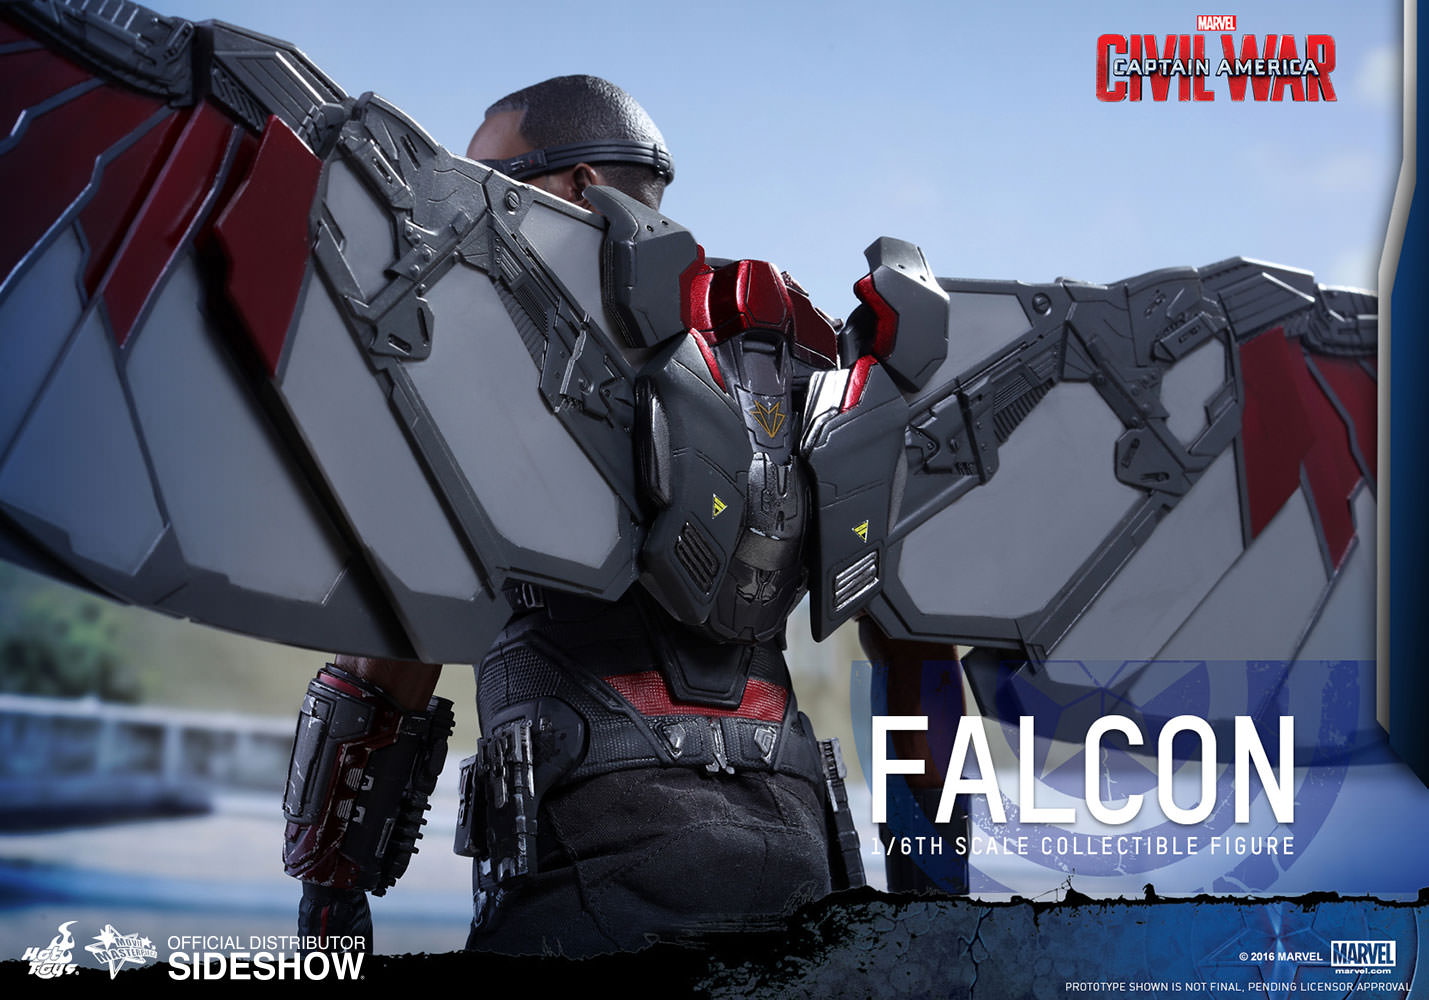 Preview: Hot Toys 1/6th Scale Falcon (from Captain America: Civil War)